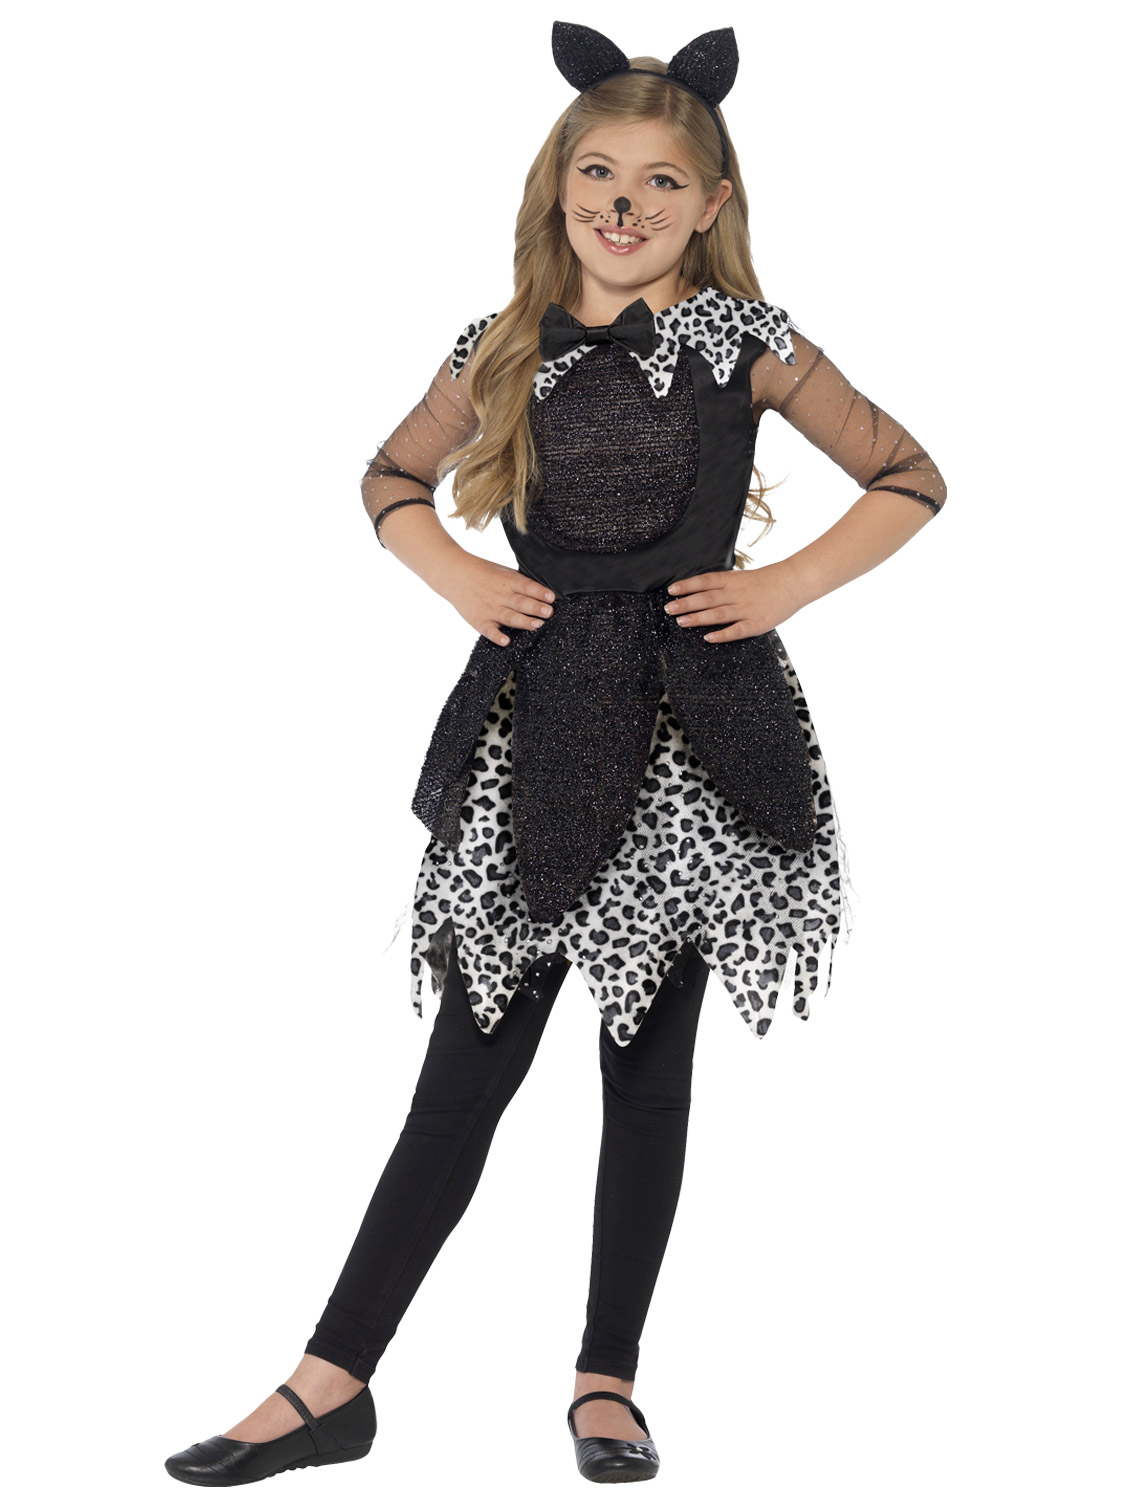 If you're looking for ideas on decorations, food and the like, check out this page full of Alice in Wonderland party ideas. If you want to buy ready-made costumes, go to the Alice in Wonderland .